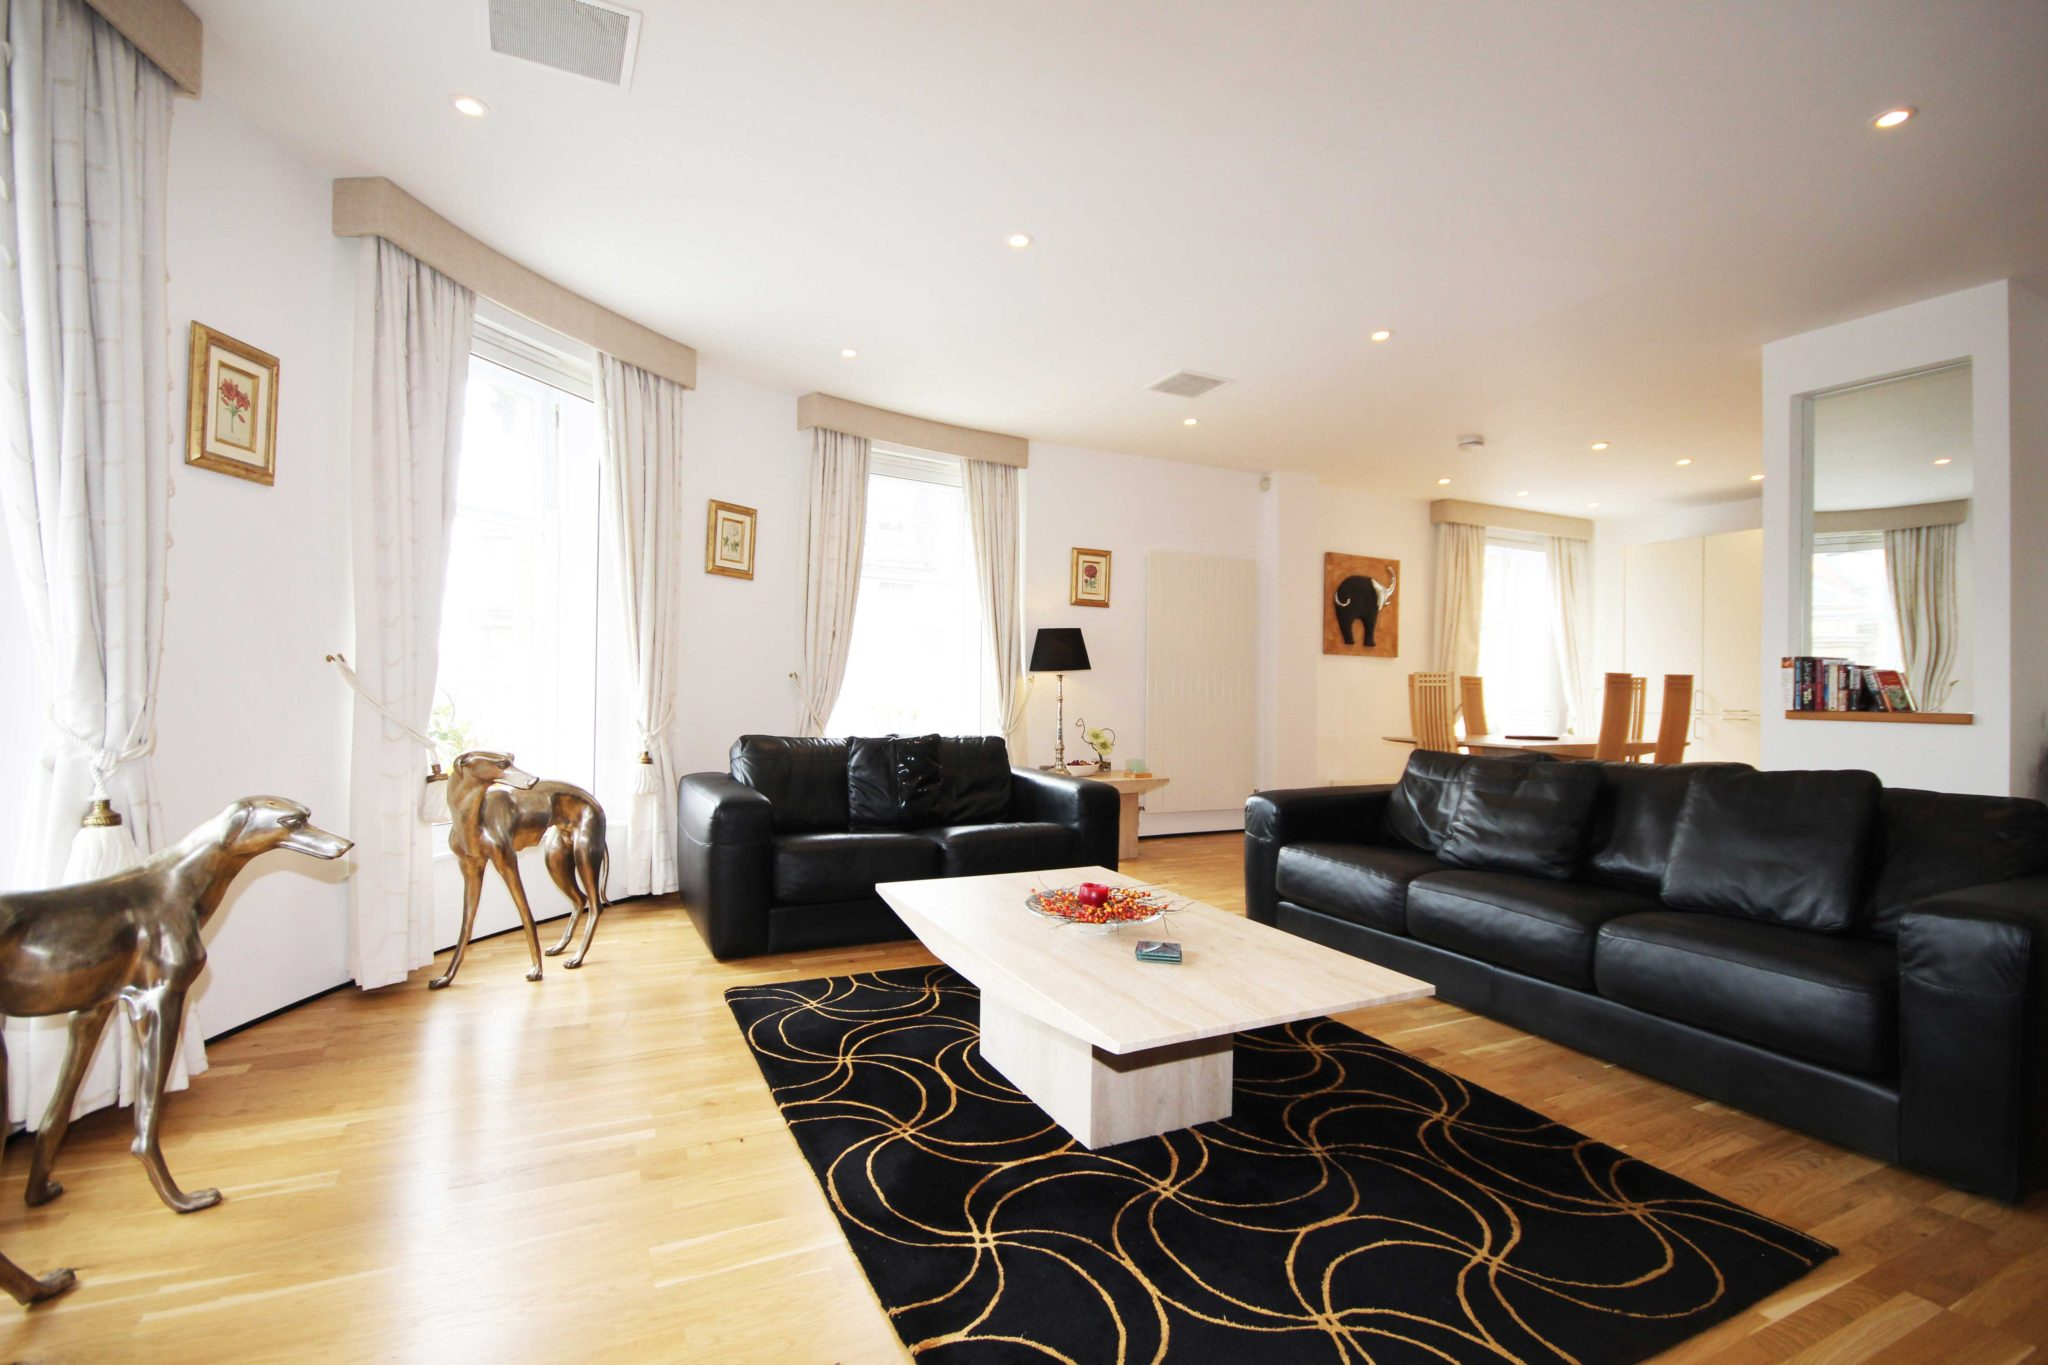 Newcastle-Short-Let-Apartments-UK-available-Now!-Book-Corporate-Serviced-Accommodation-in-North-East-England-today!-Parking,Wifi,-5*-Service,-All-bills-incl